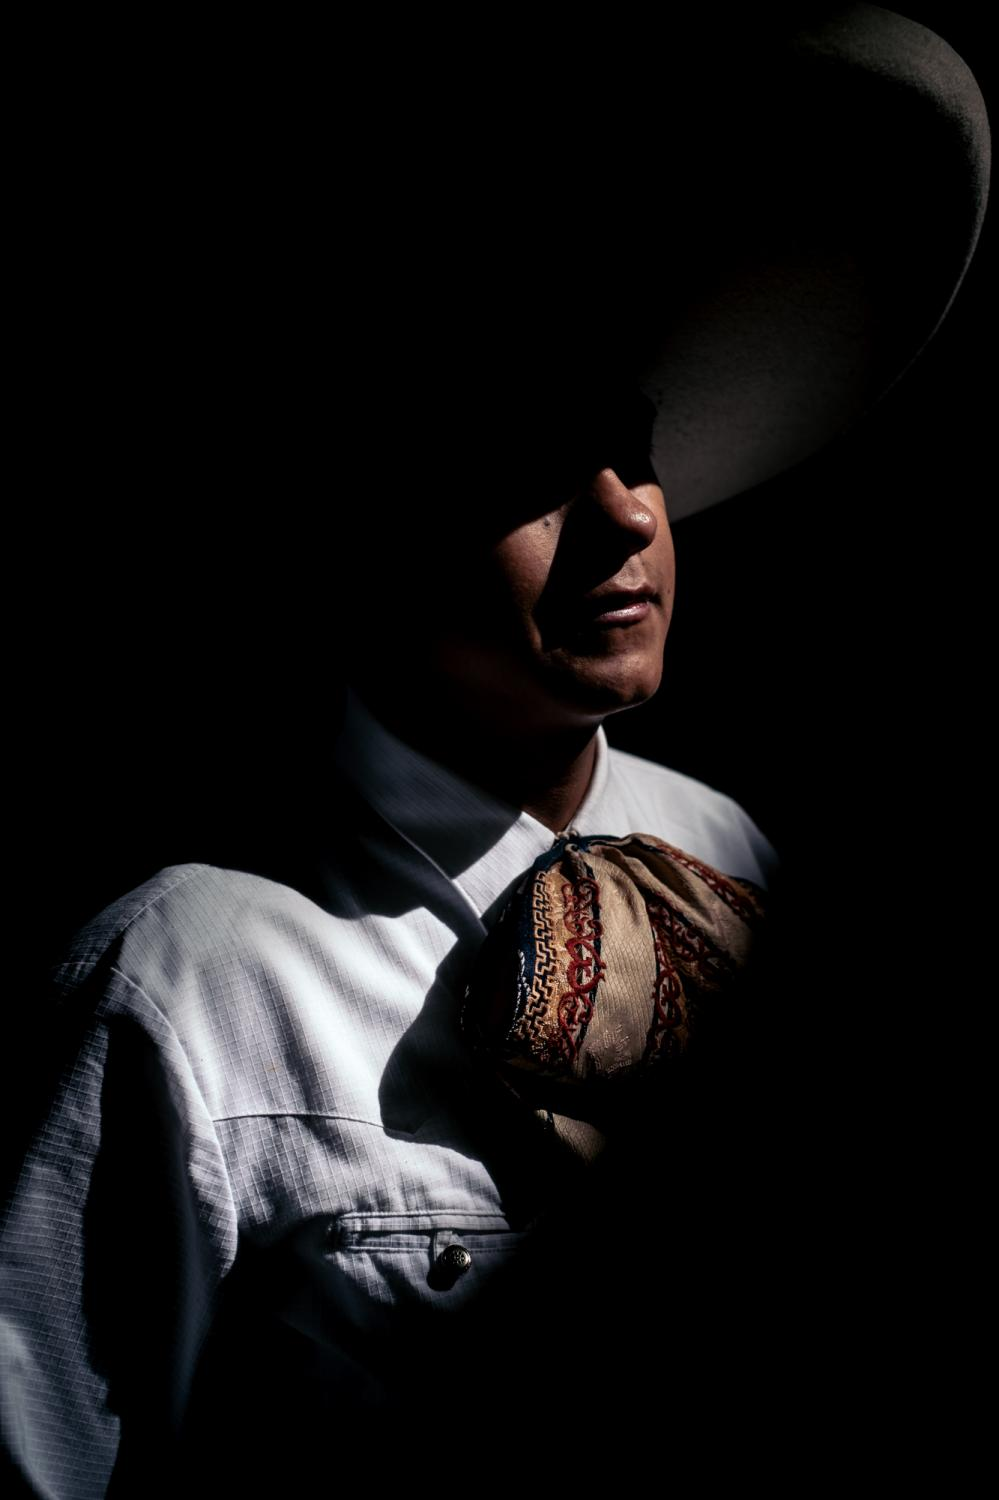 Portrait d'Eduardo Hurtado Mejia, jeune Charro de 19 ans, il a commencé la Charreria à l'âge de 6 ans. 27/07/18 Ezequiel Montes, Queretaro, Mexique. Portrait of Eduardo Hurtado Mejia, young Charro of 19, he started Charreria at the age of 6 years old. 27/07/18 Ezequiel Montes, Queretaro, Mexico.